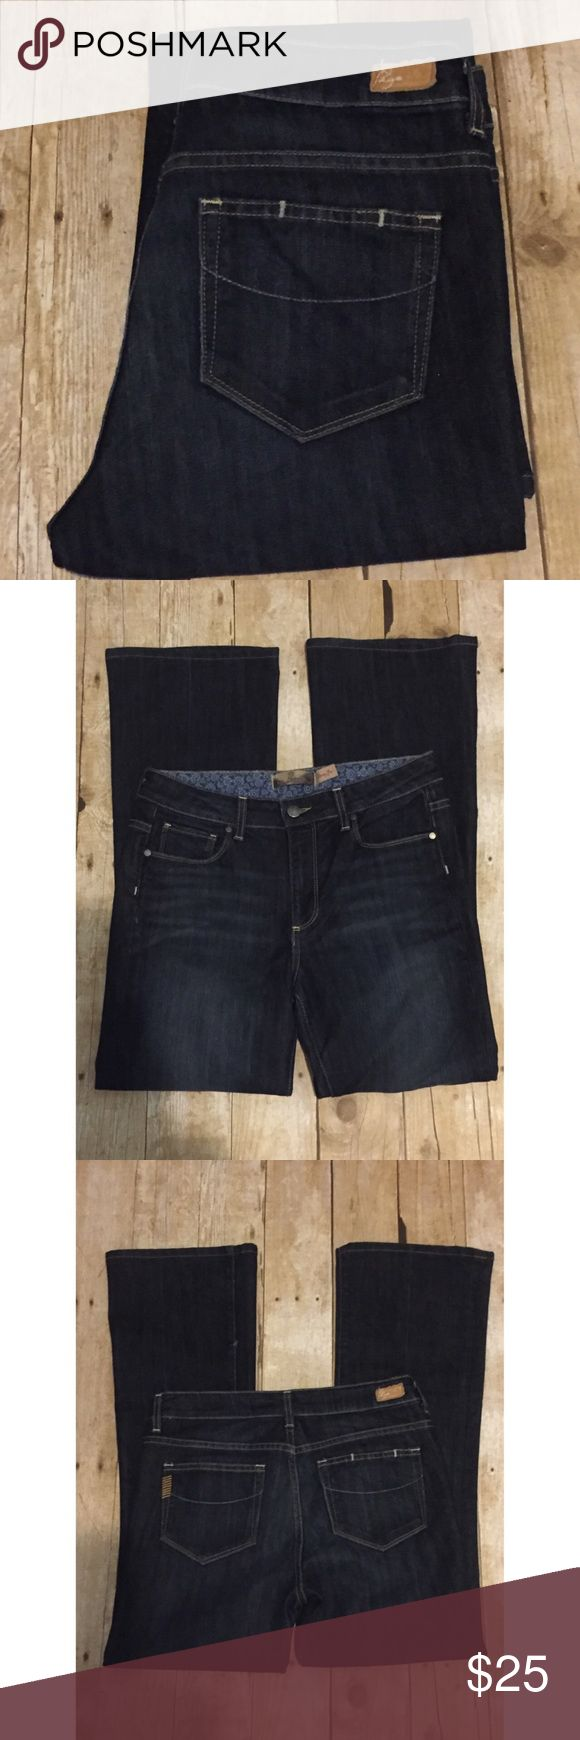 Paige Rising Glen High Rise Boot Cut Jeans❤️ Paige Rising Glen High Rise Boot Cut Jeans. These are in Great condition other then a small defect hole in seam seen on left leg in pic #3 not noticeable. Still a beautiful pair of PAIGE Jeans 😍 sz  29x29.5 Paige Jeans Jeans Boot Cut